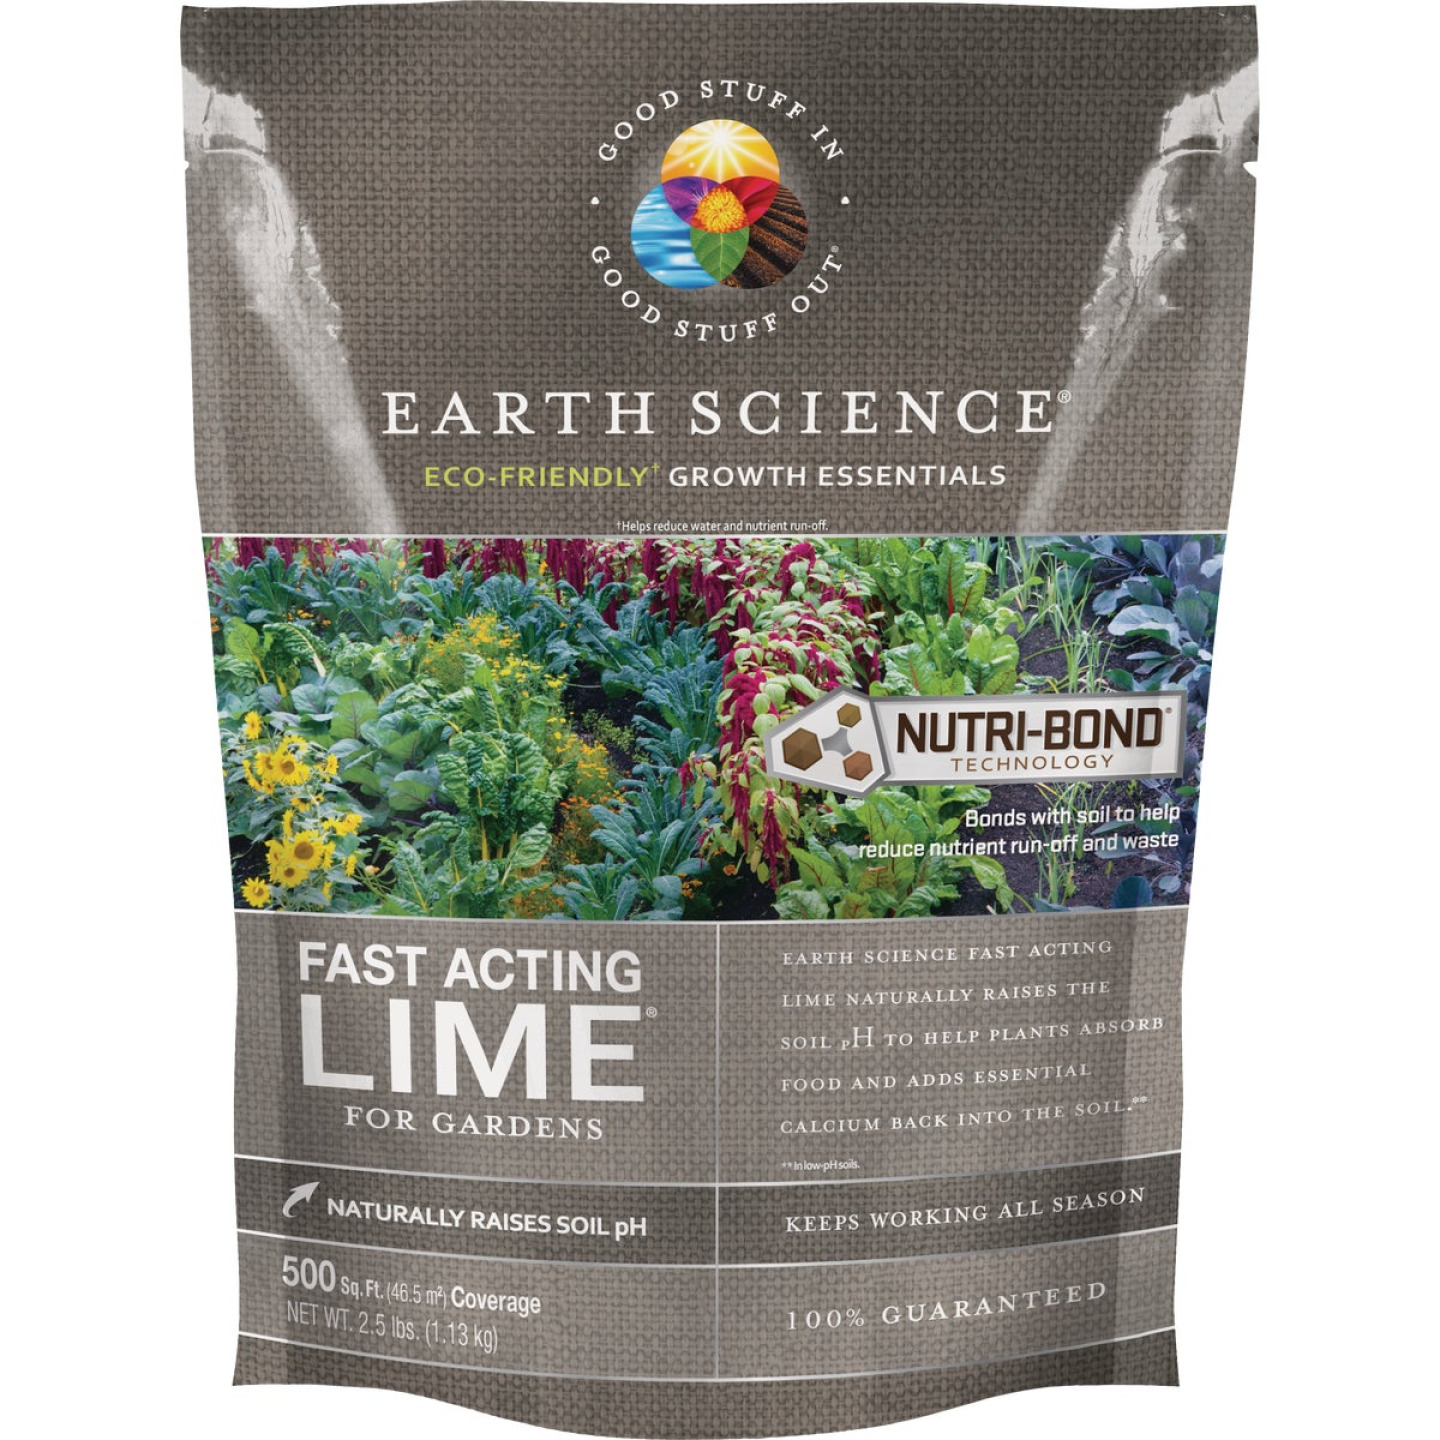 Earth Science Fast Acting 2.5 Lb. 500 Sq. Ft. Coverage Lime Image 1